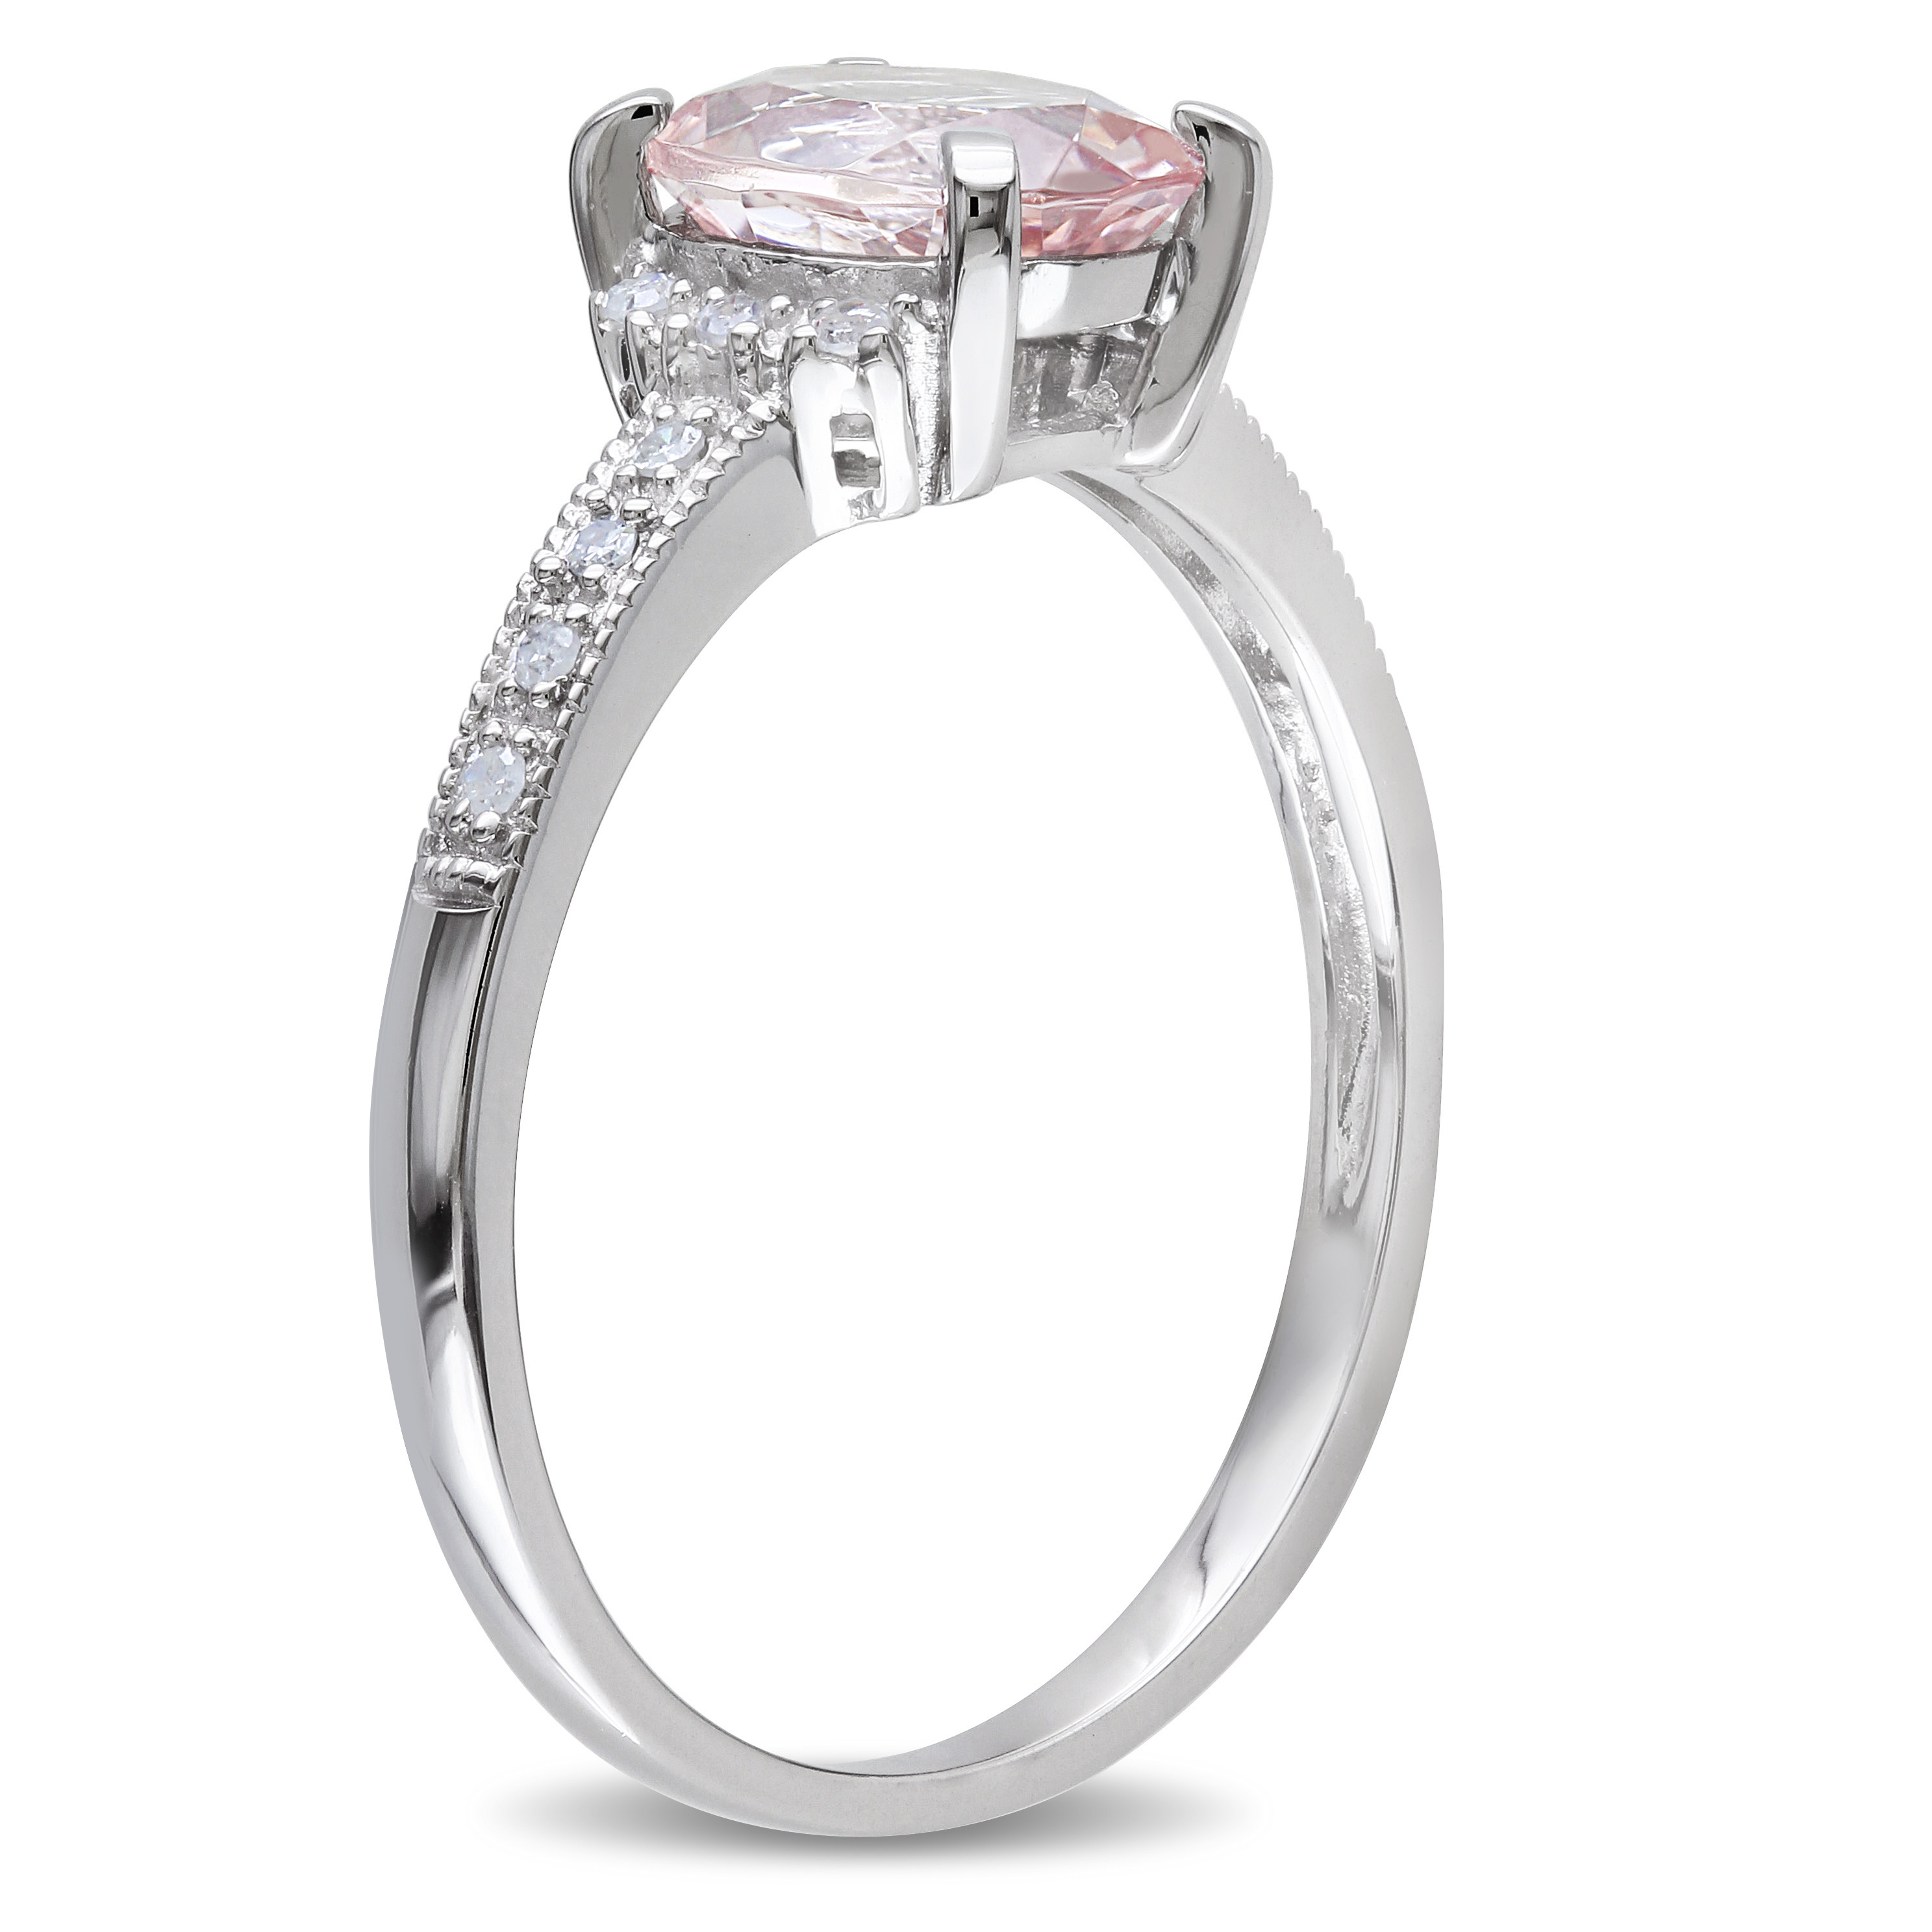 Diamond & Morganite Fashion Ring Sterling Silver (1.21ct)